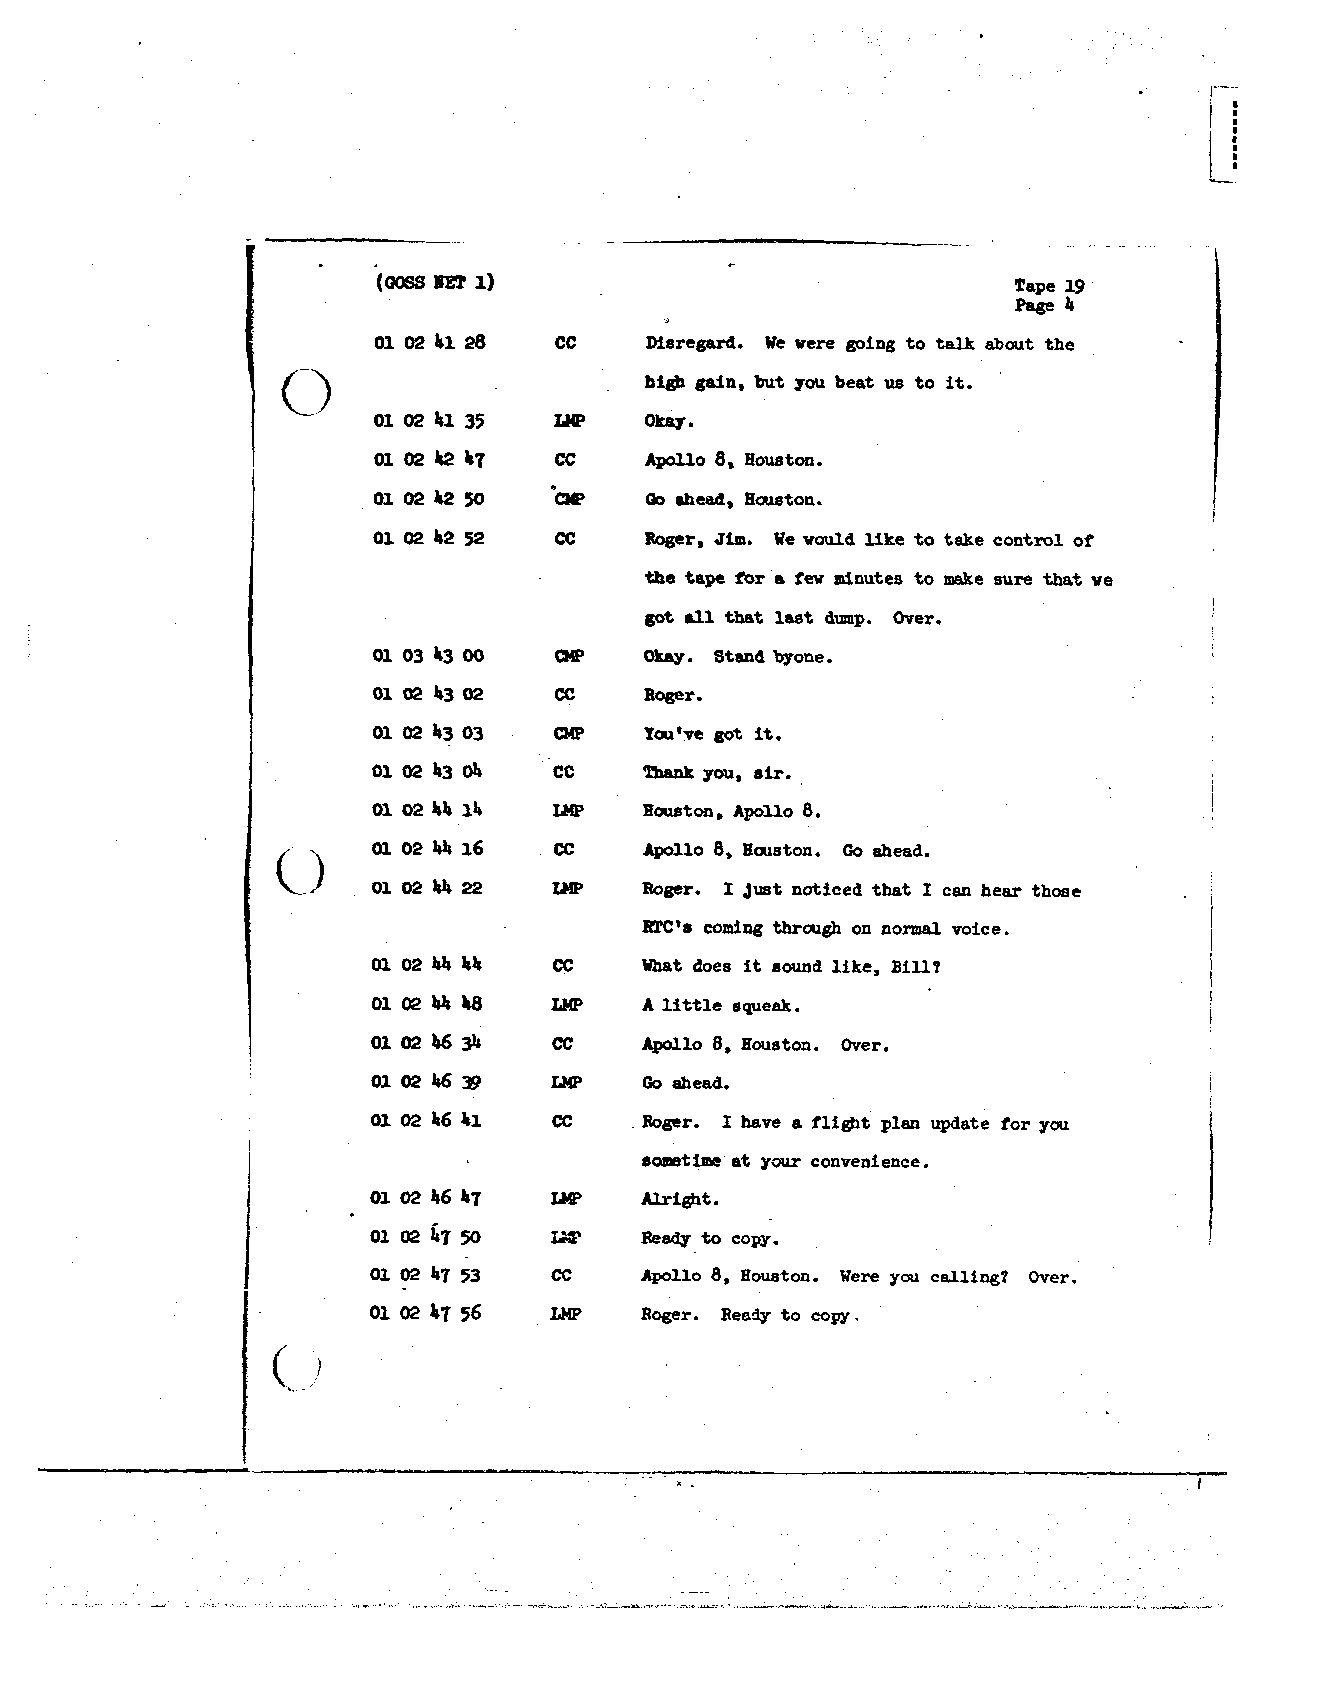 Page 151 of Apollo 8's original transcript